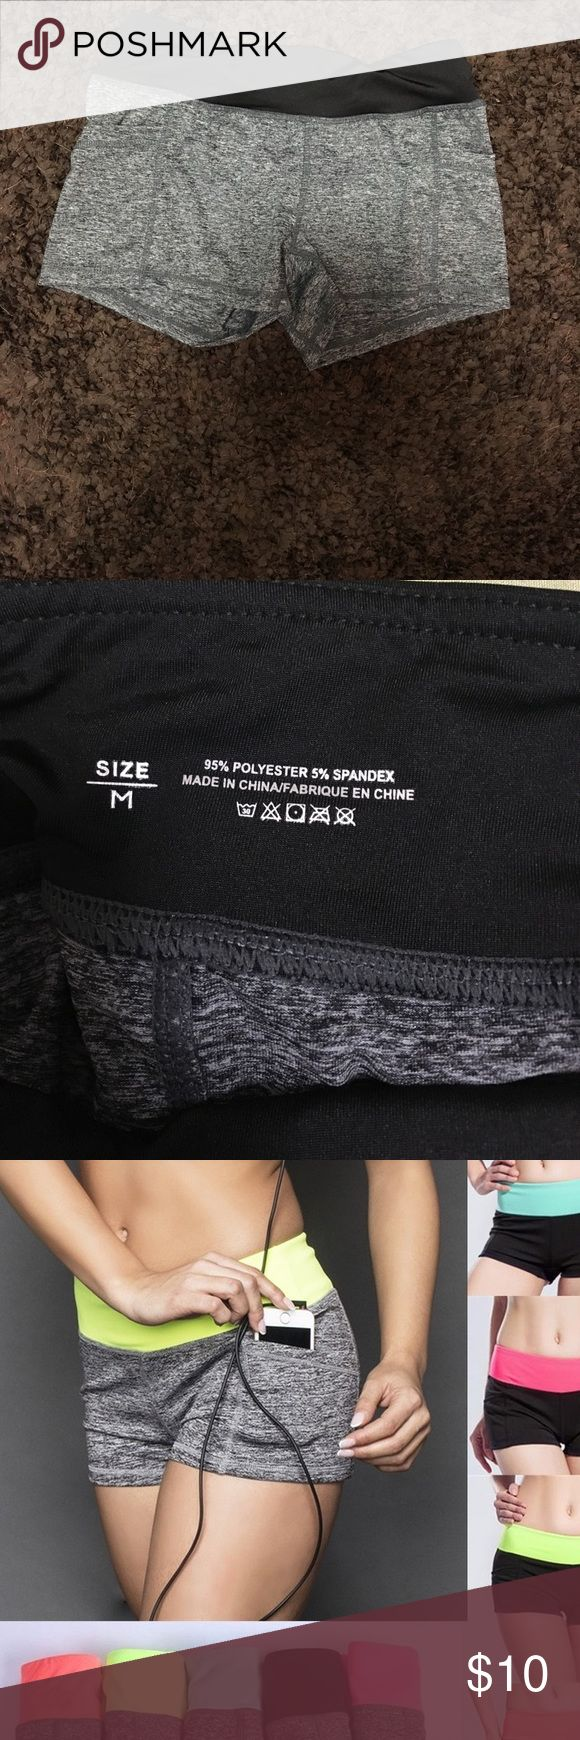 Spandex shorts black and gray only Spandex shorts with pocket. They run small! So more for XS-S ! Shorts